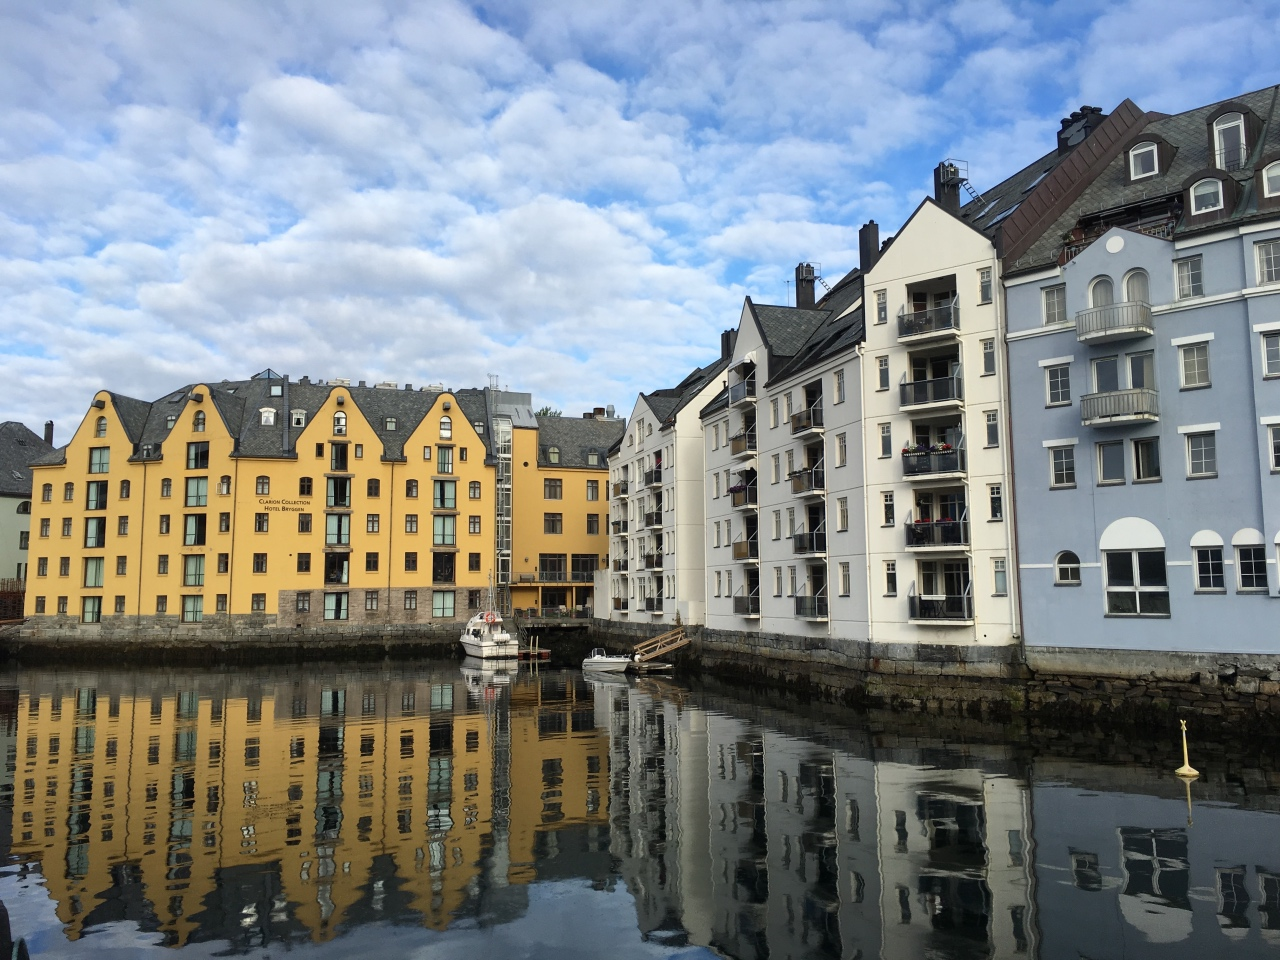 Aalesund canal